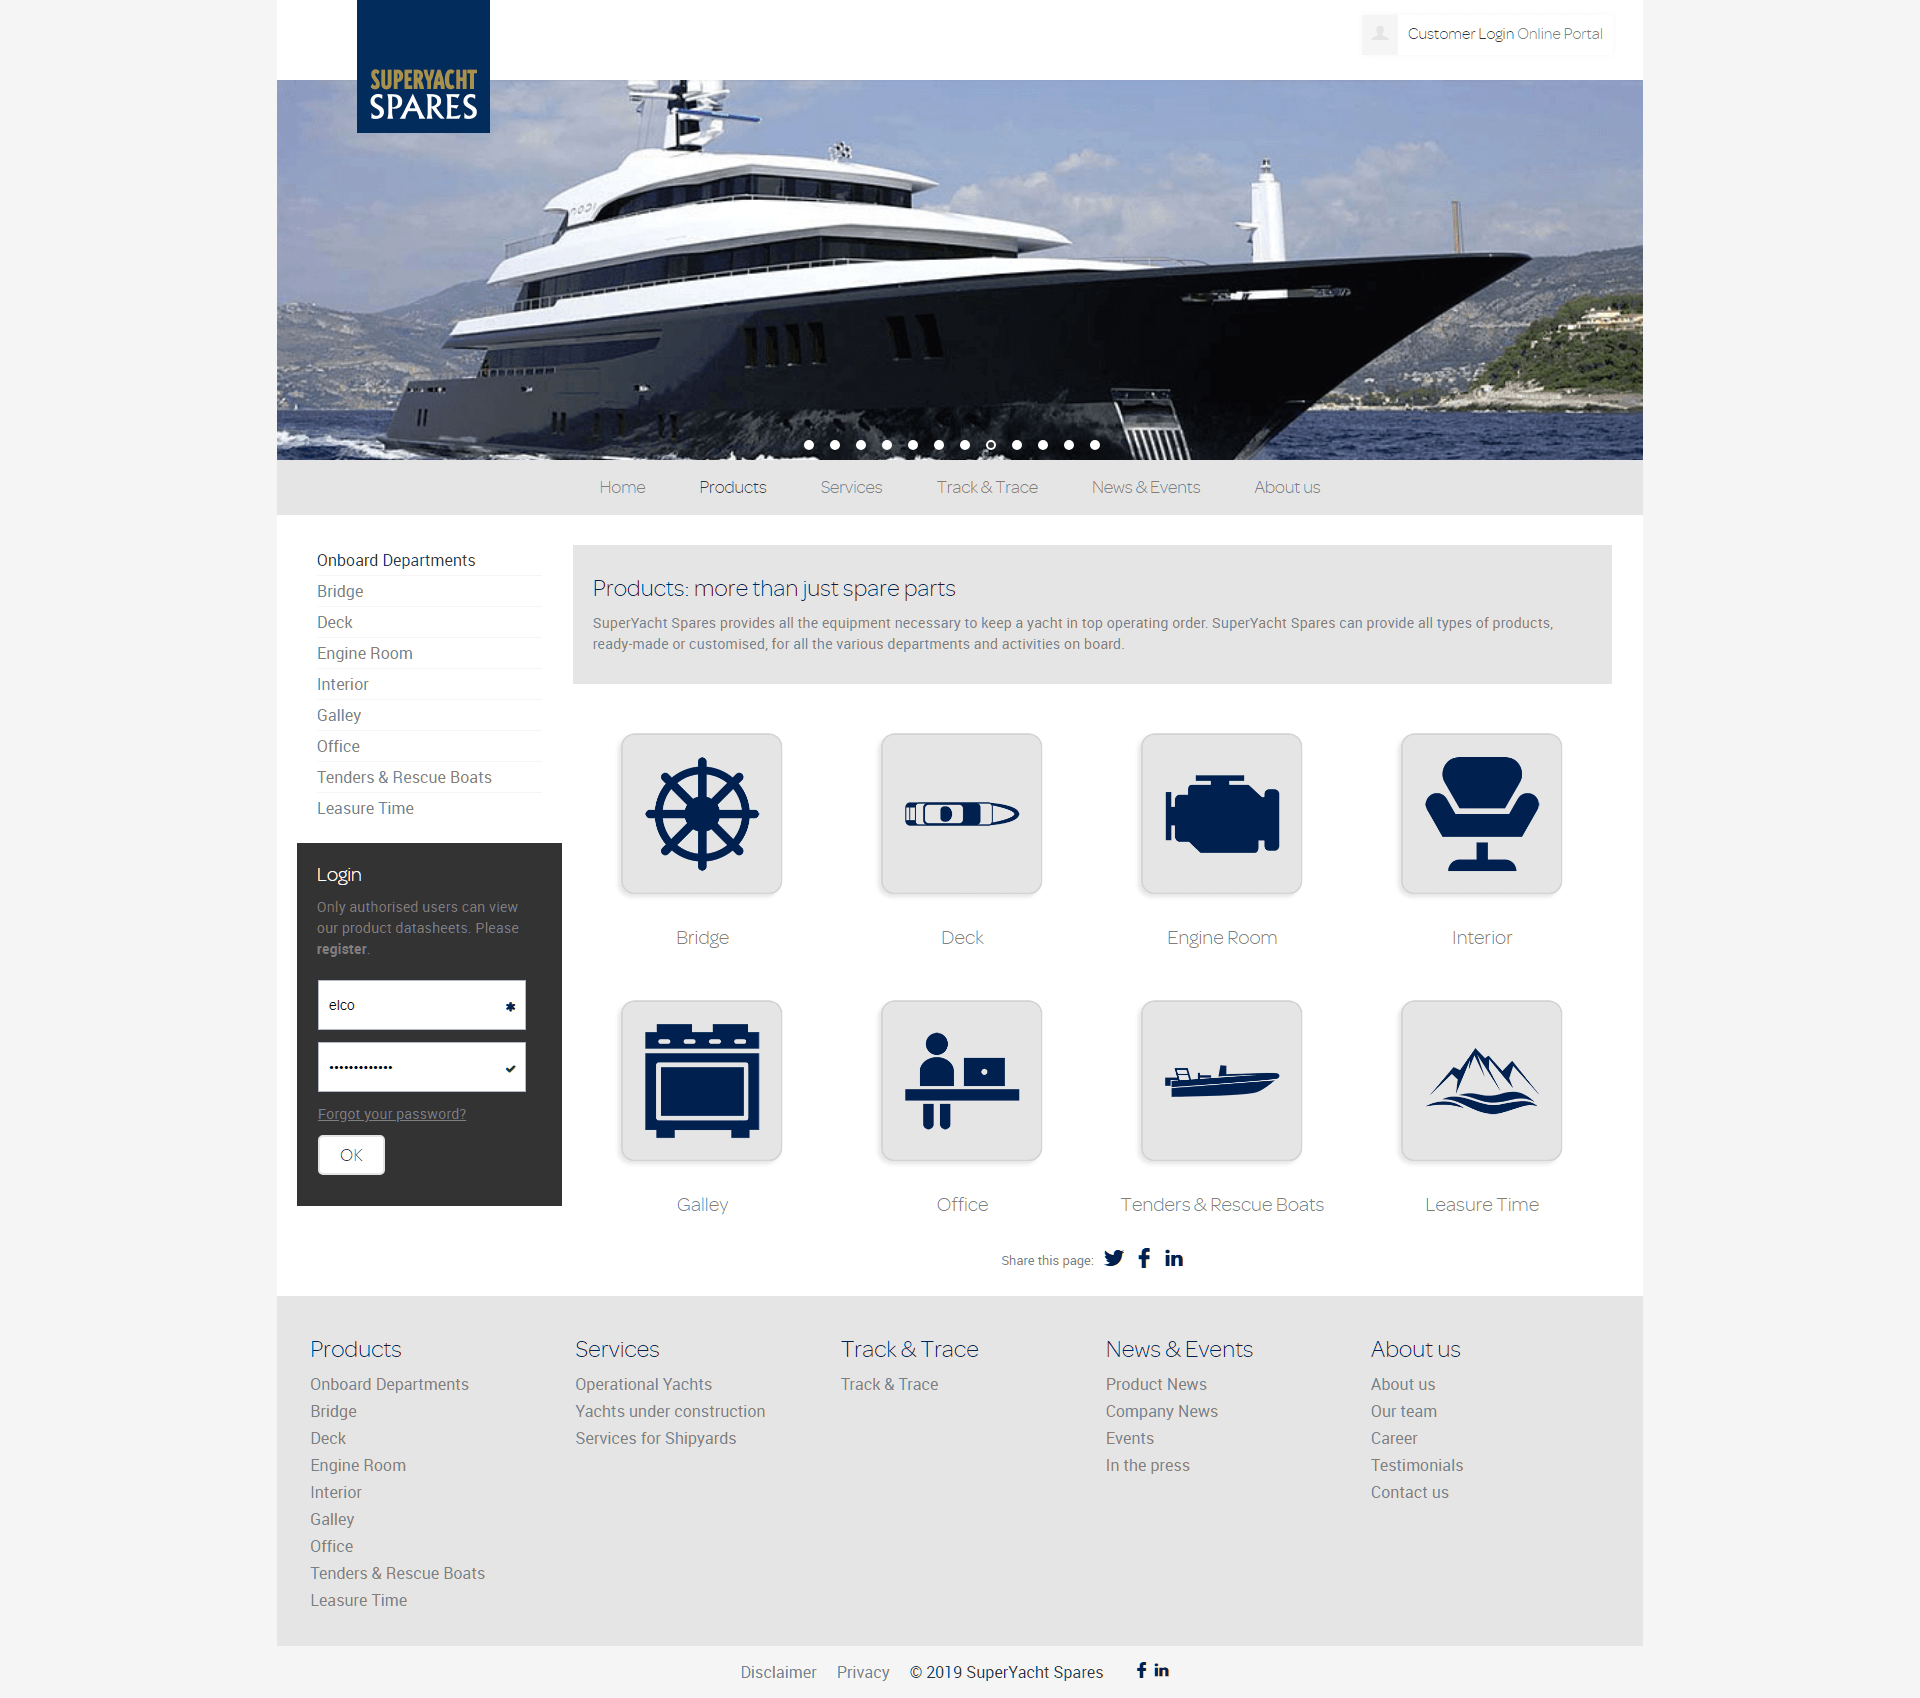 Superyacht Spares Product Overview